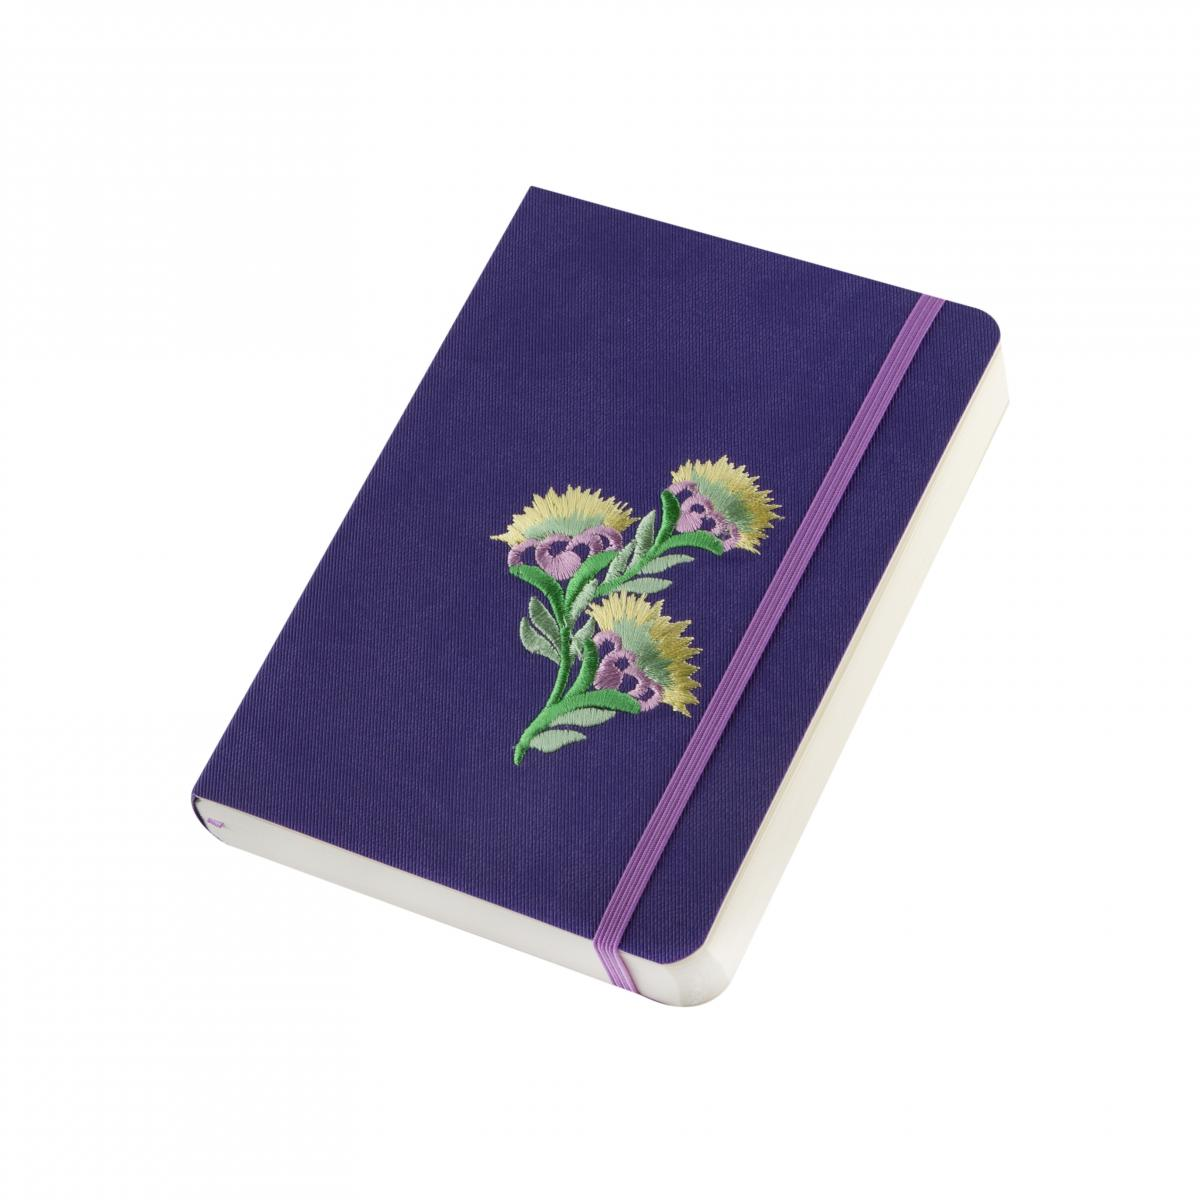 "Eco-leather notebook with embroidery ""Flower of rapeseed"", violet. Photo №2. 